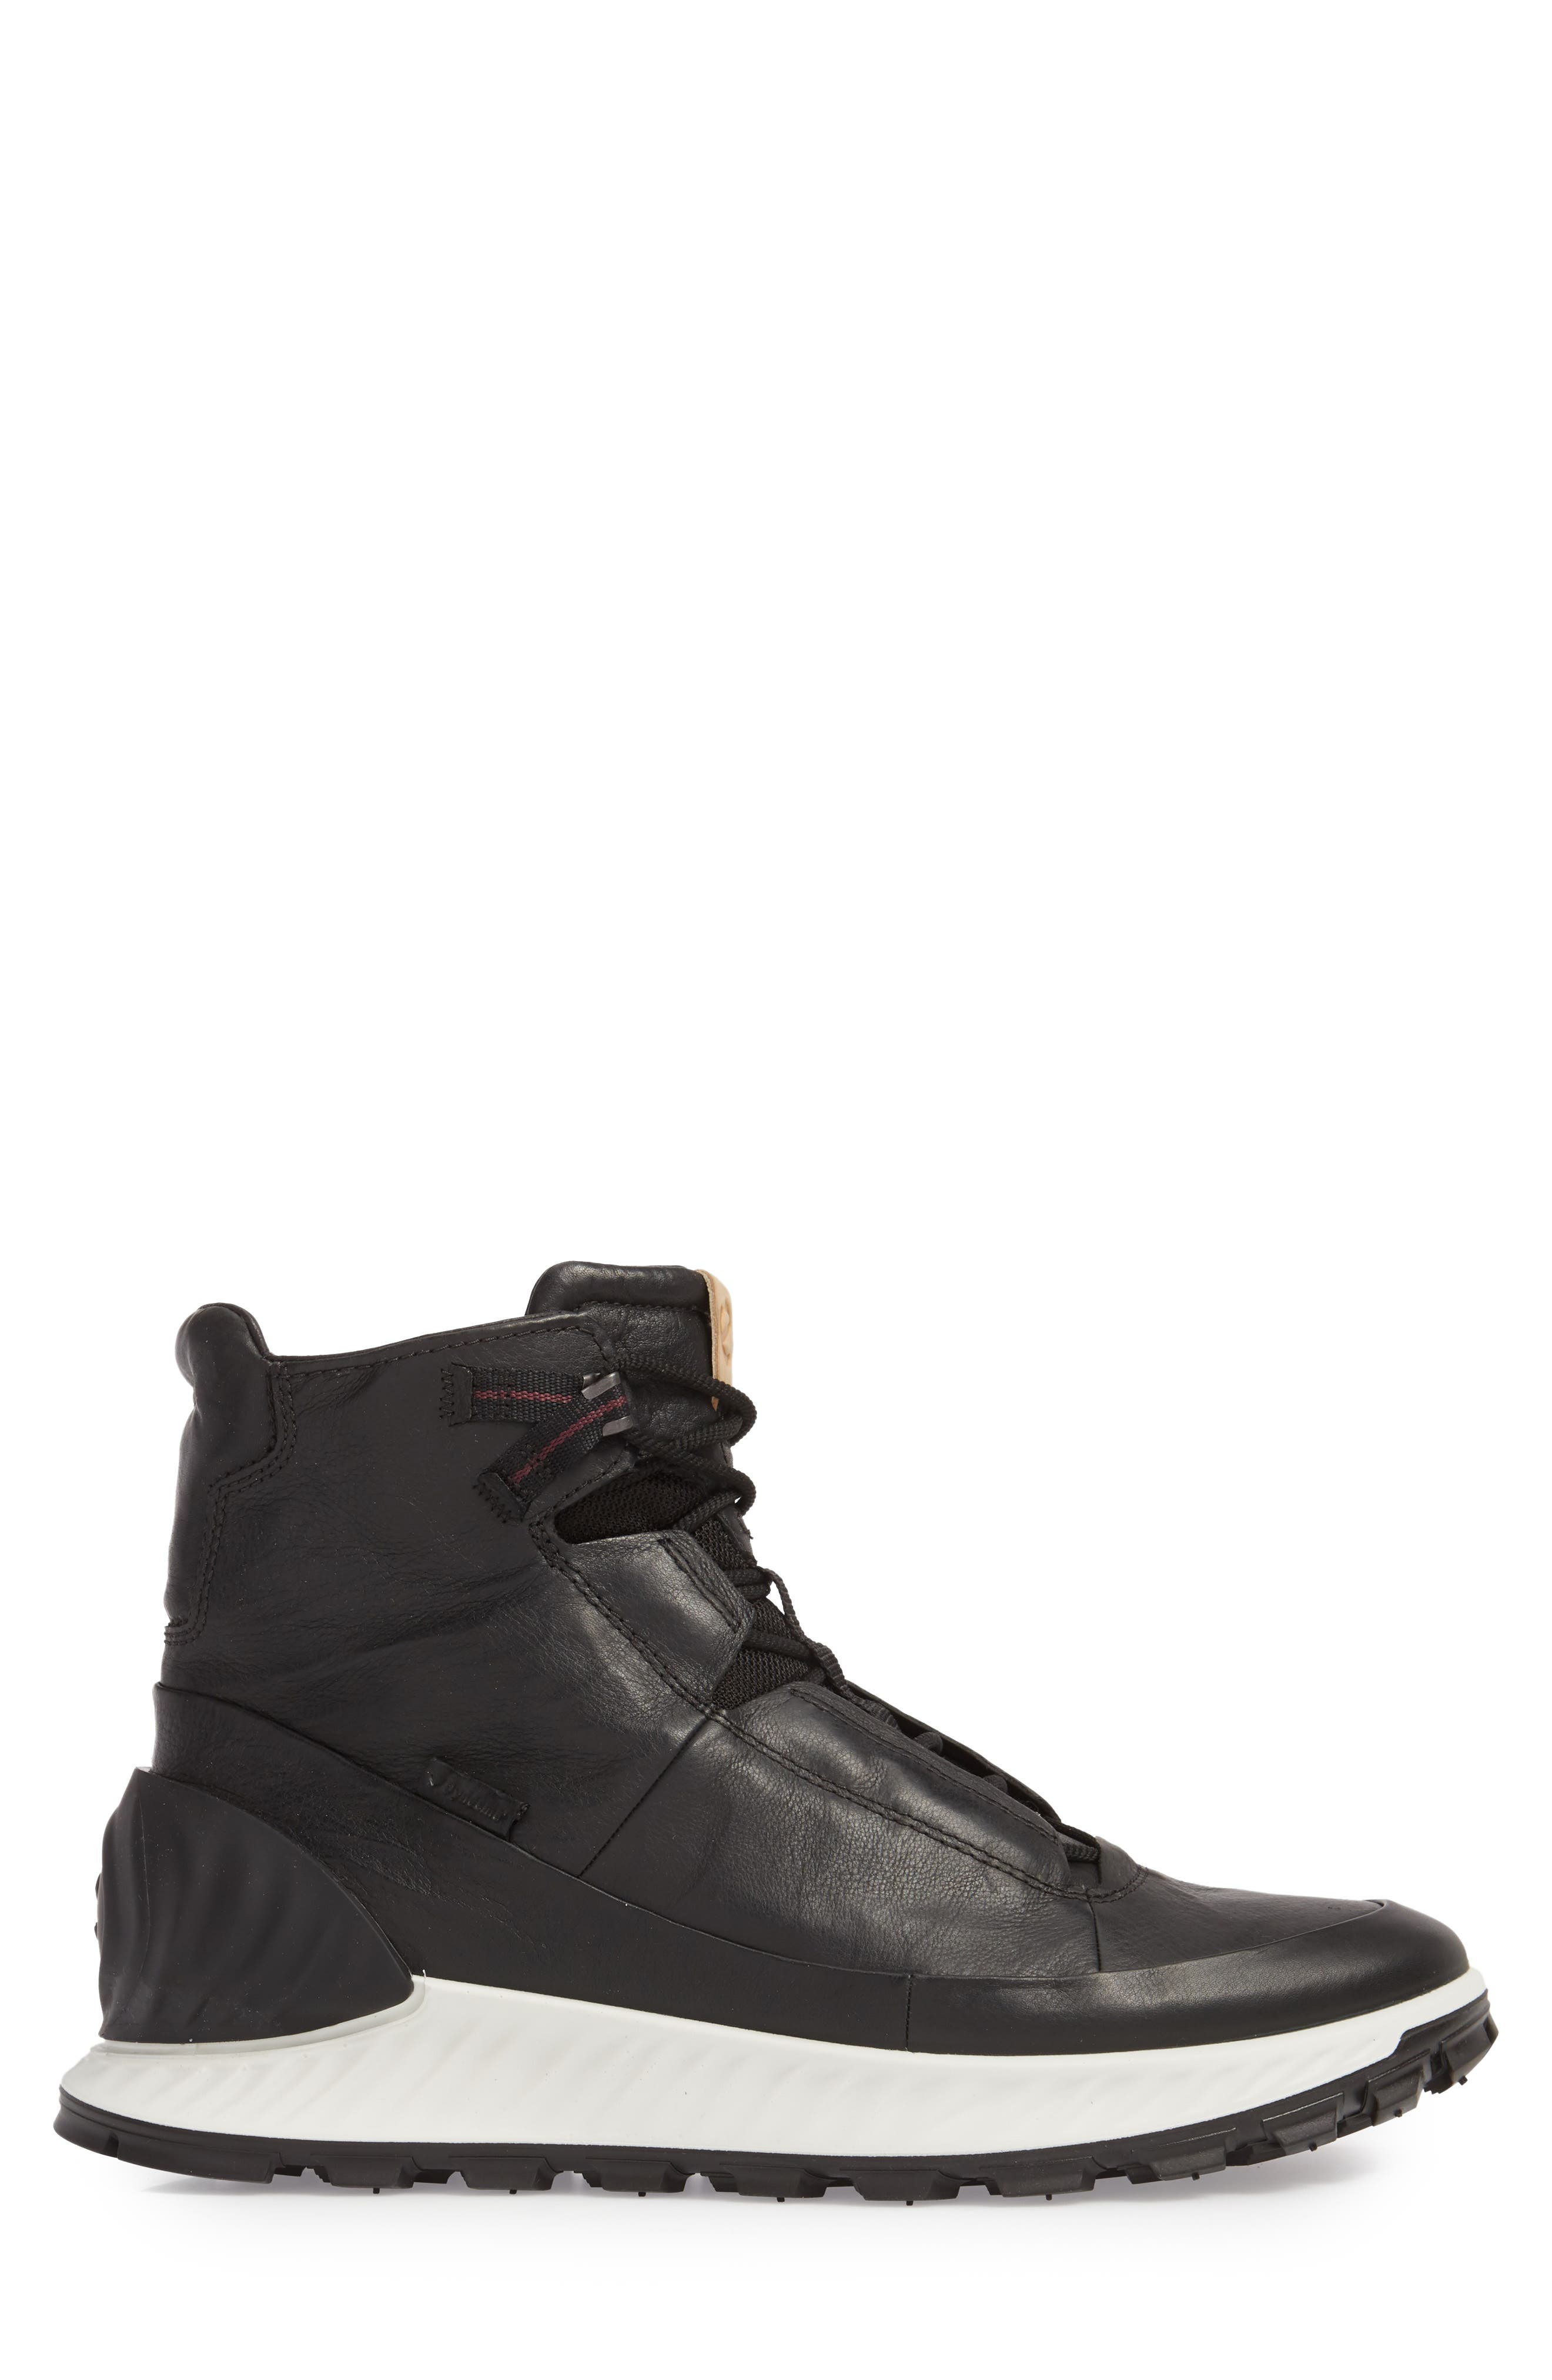 Limited Edition Exostrike Dyneema Sneaker Boot,                             Alternate thumbnail 3, color,                             BLACK LEATHER